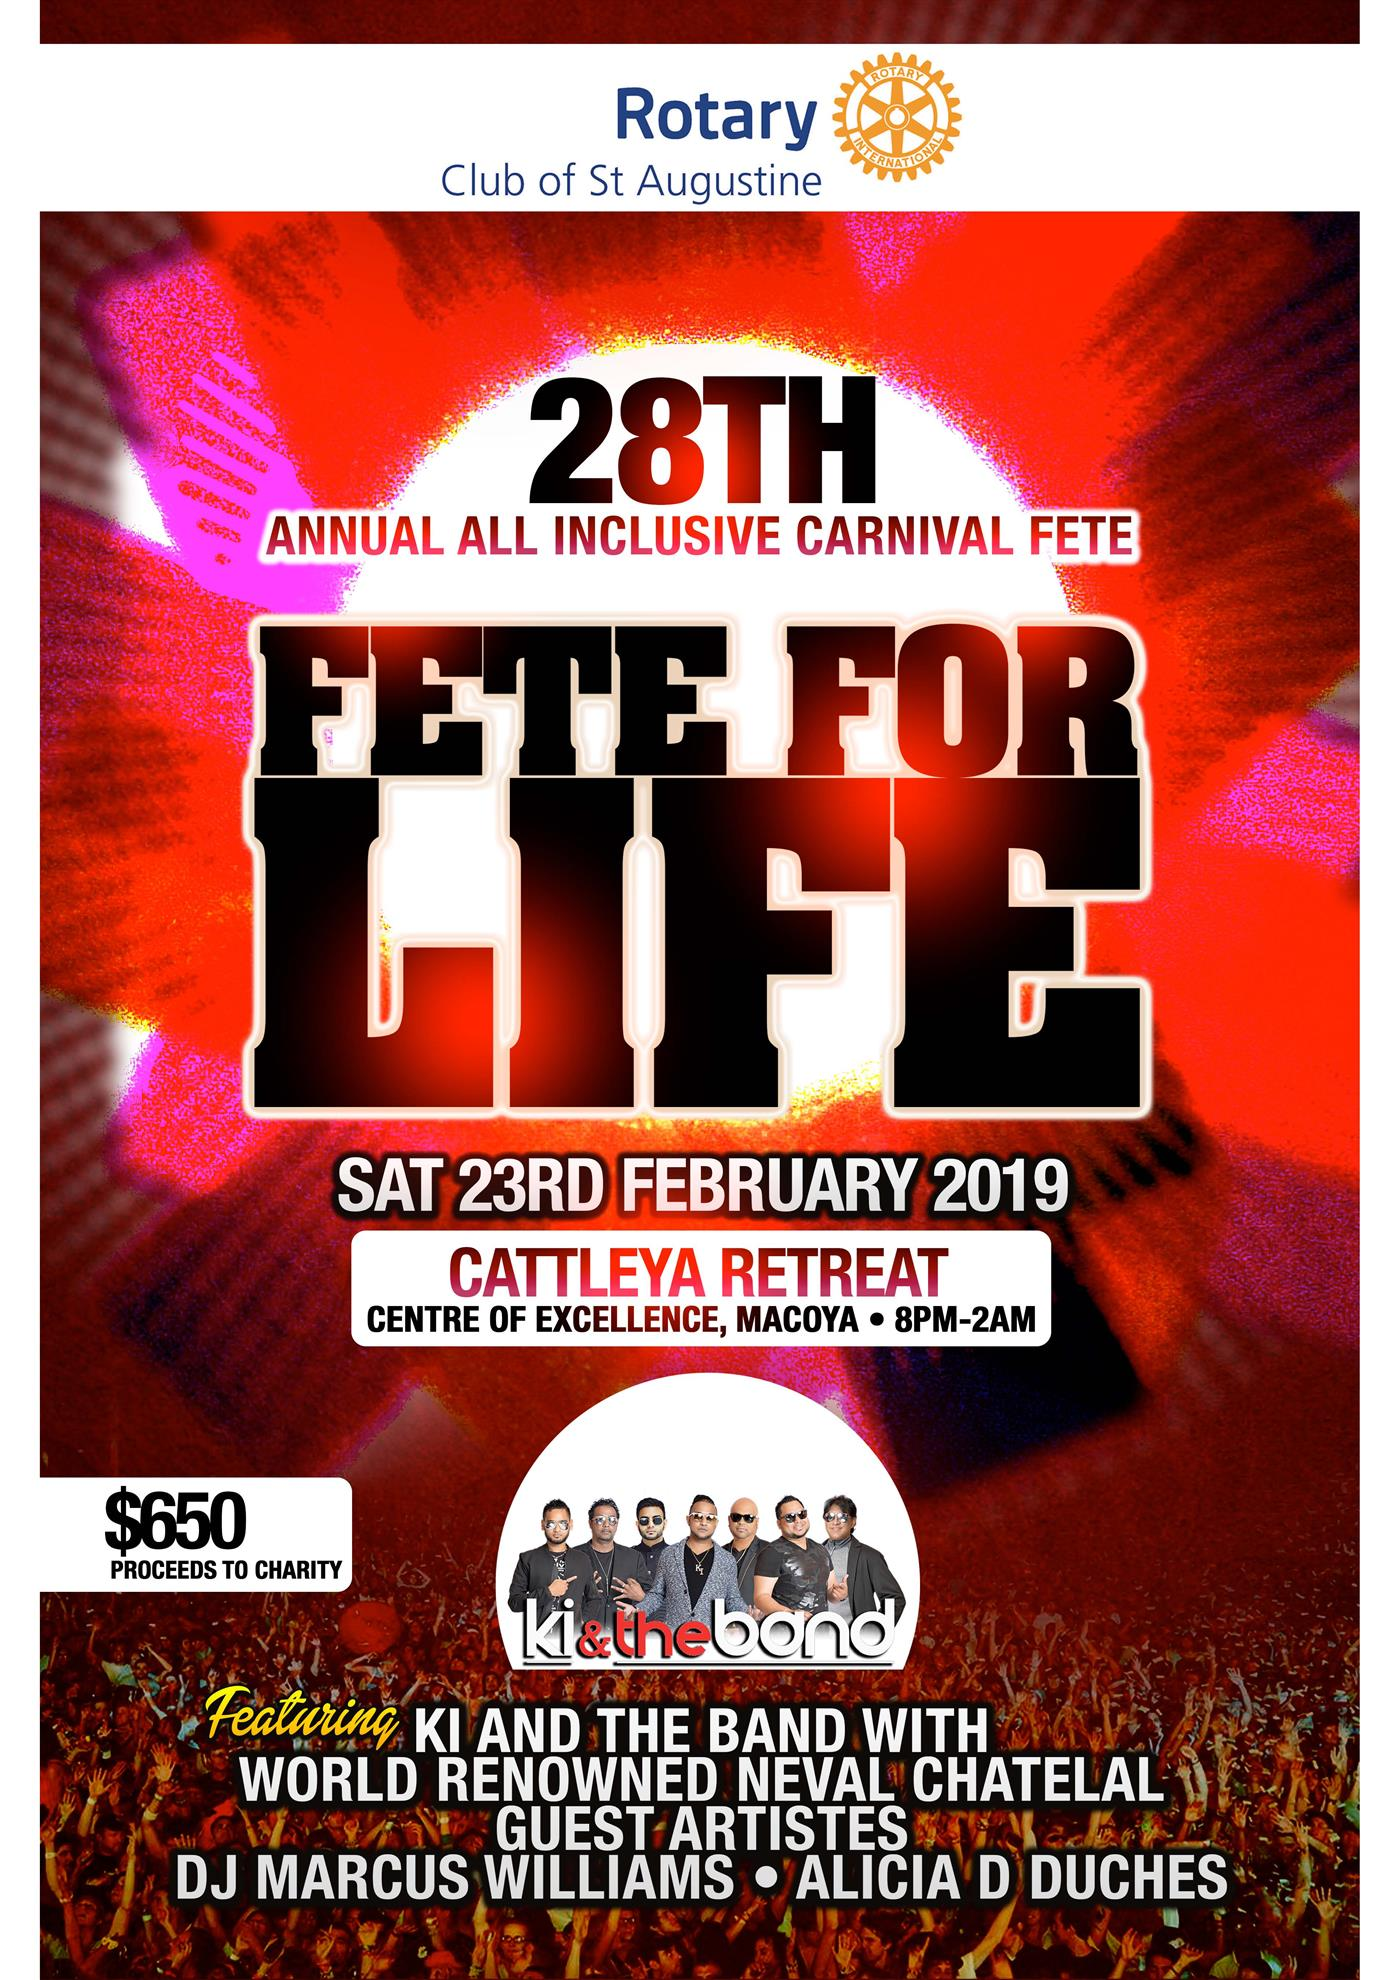 267cf49edb Purchase tickets online at   https   secure.islandetickets.com event Fete-for-Life